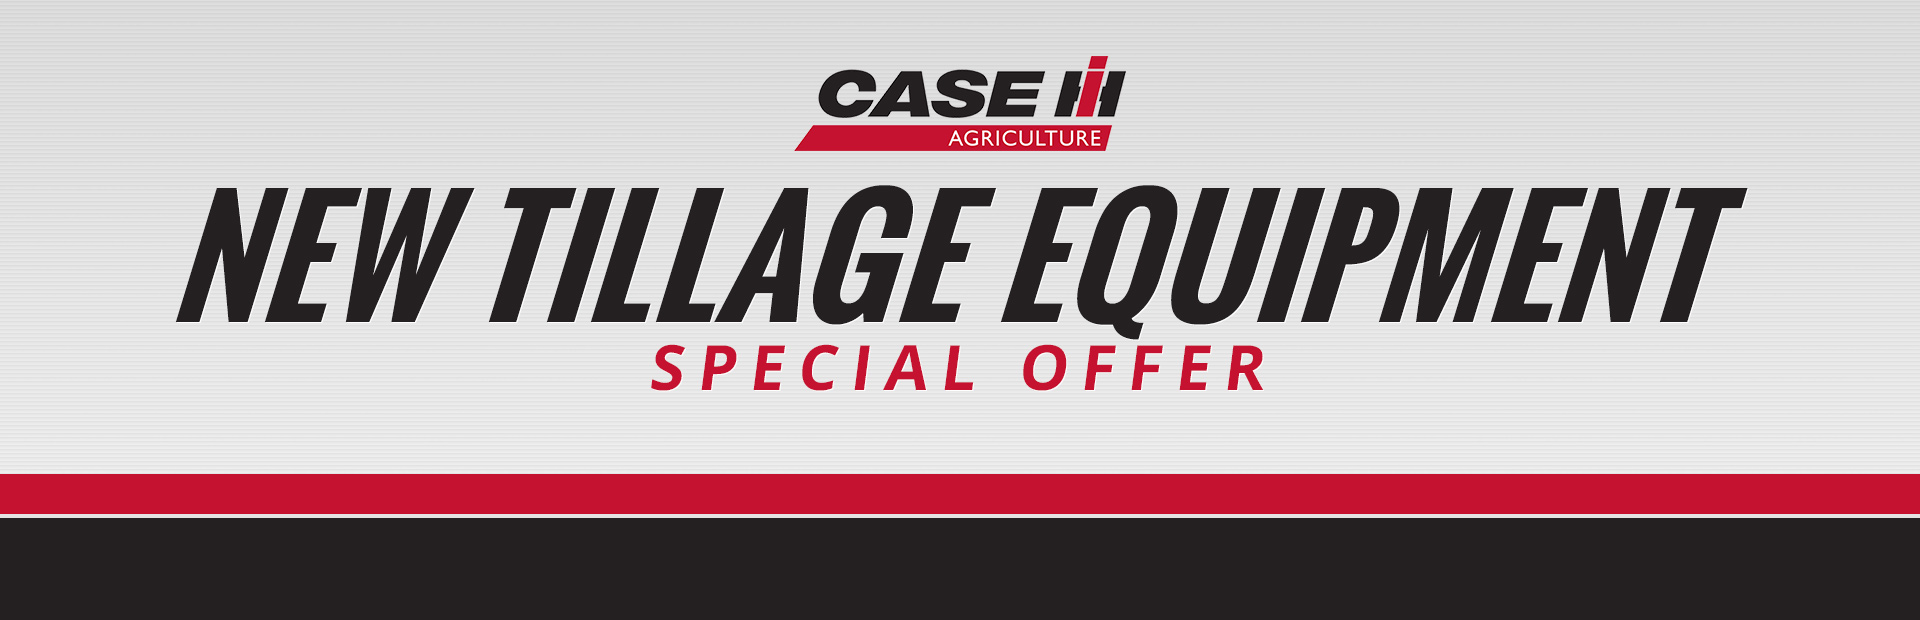 Case IH: New Tillage Equipment Special Offer